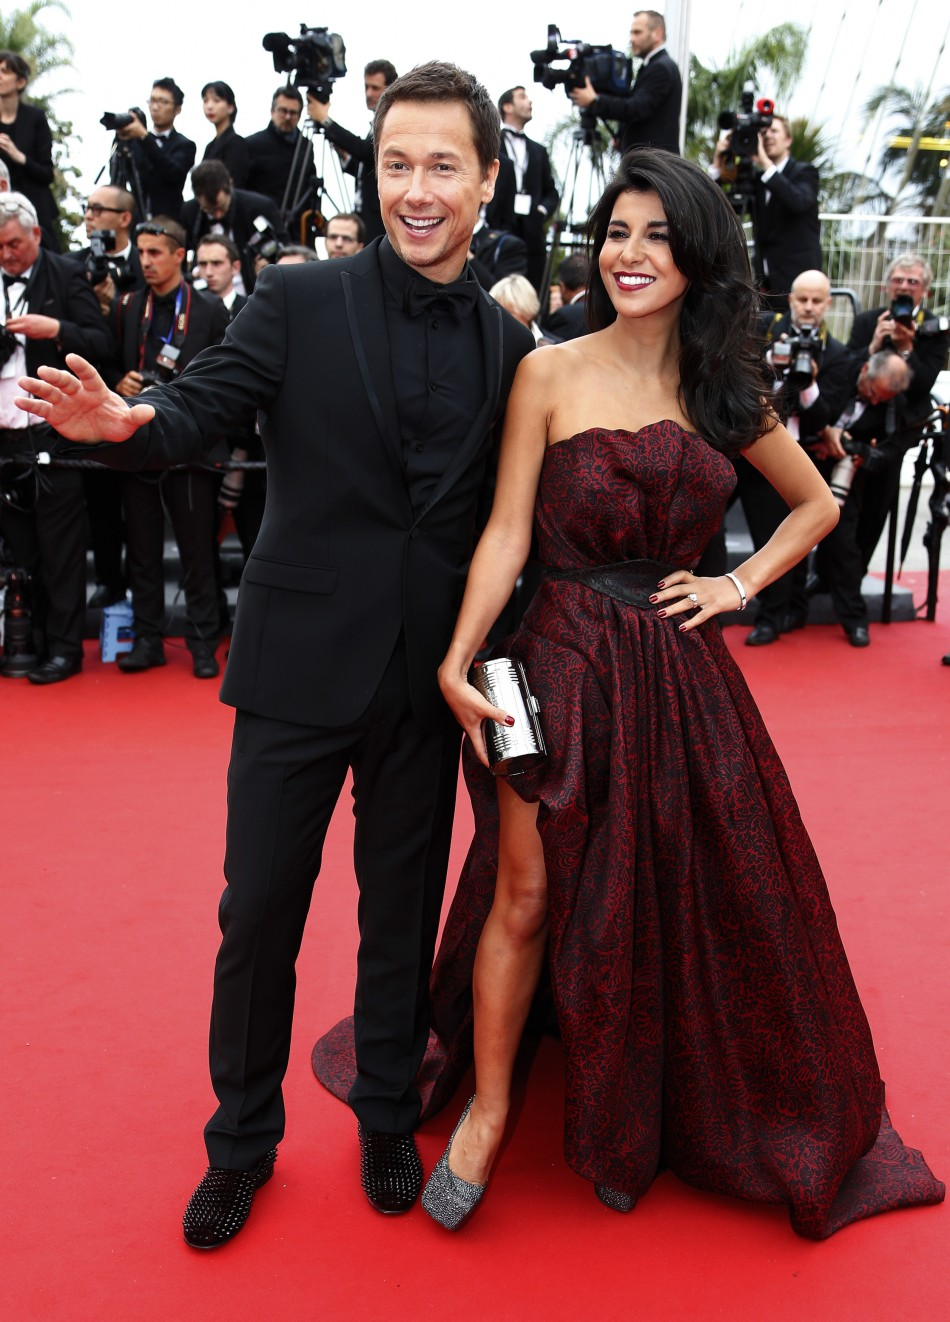 Actor Stephane Rousseau L and actress and director Reem Kherici pose on the red carpet for the screening of the film Jeune  Jolie Young  Beautiful in competition during the 66th Cannes Film Festival in Cannes May 16, 2013.